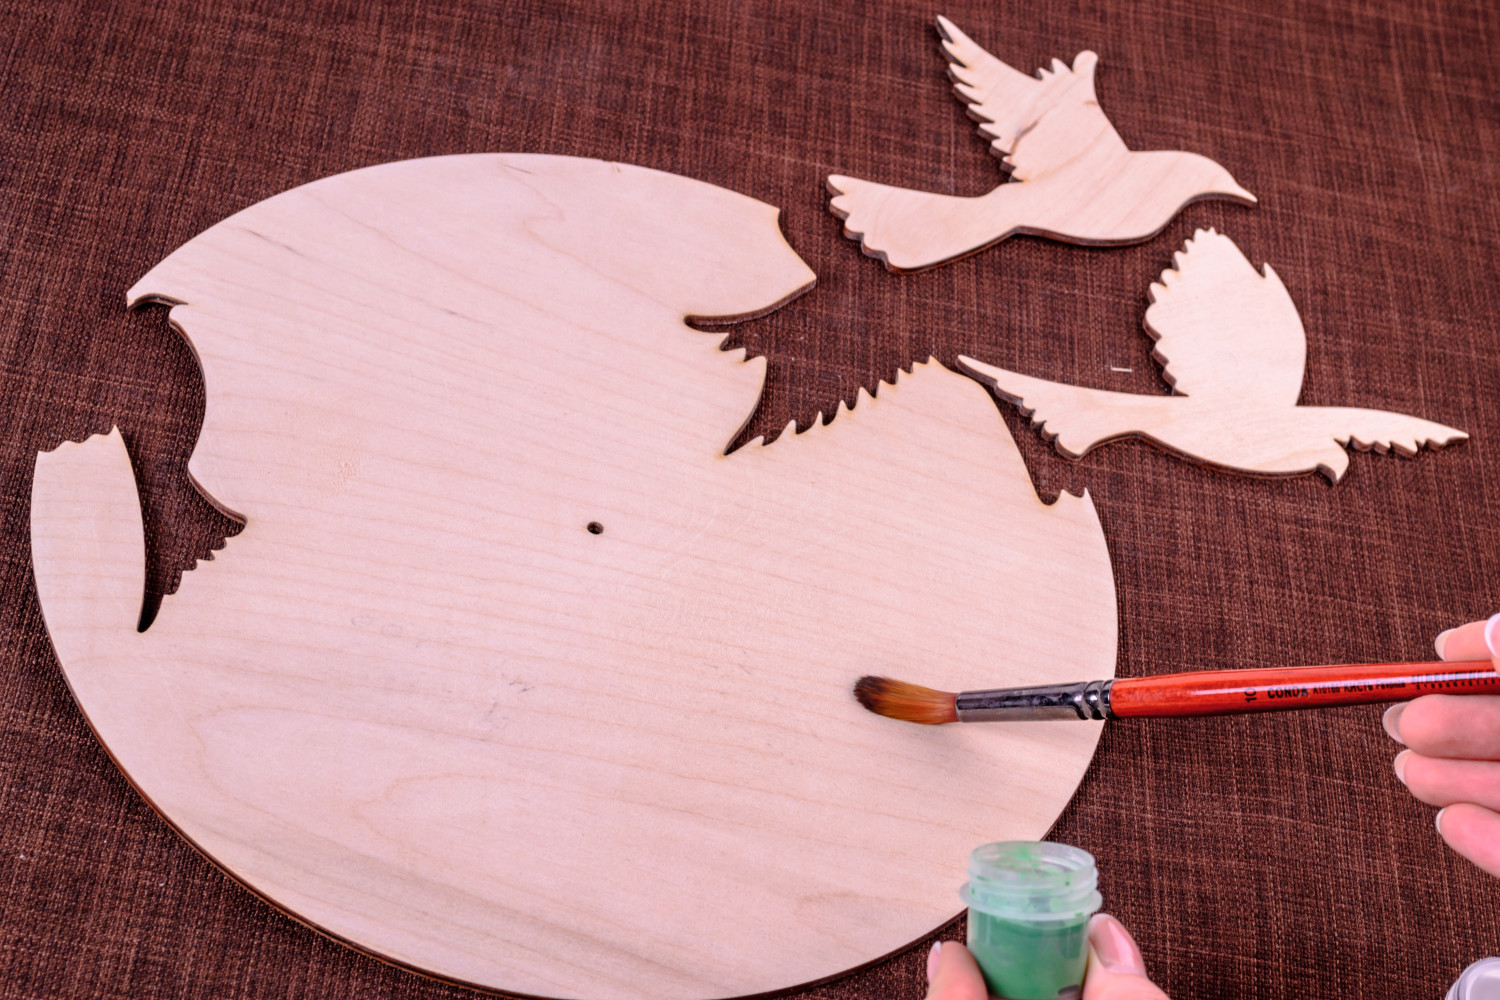 chipboards Blank for creativity handmade wall clock decoupage wall clock blank for painting - MADEheart.com